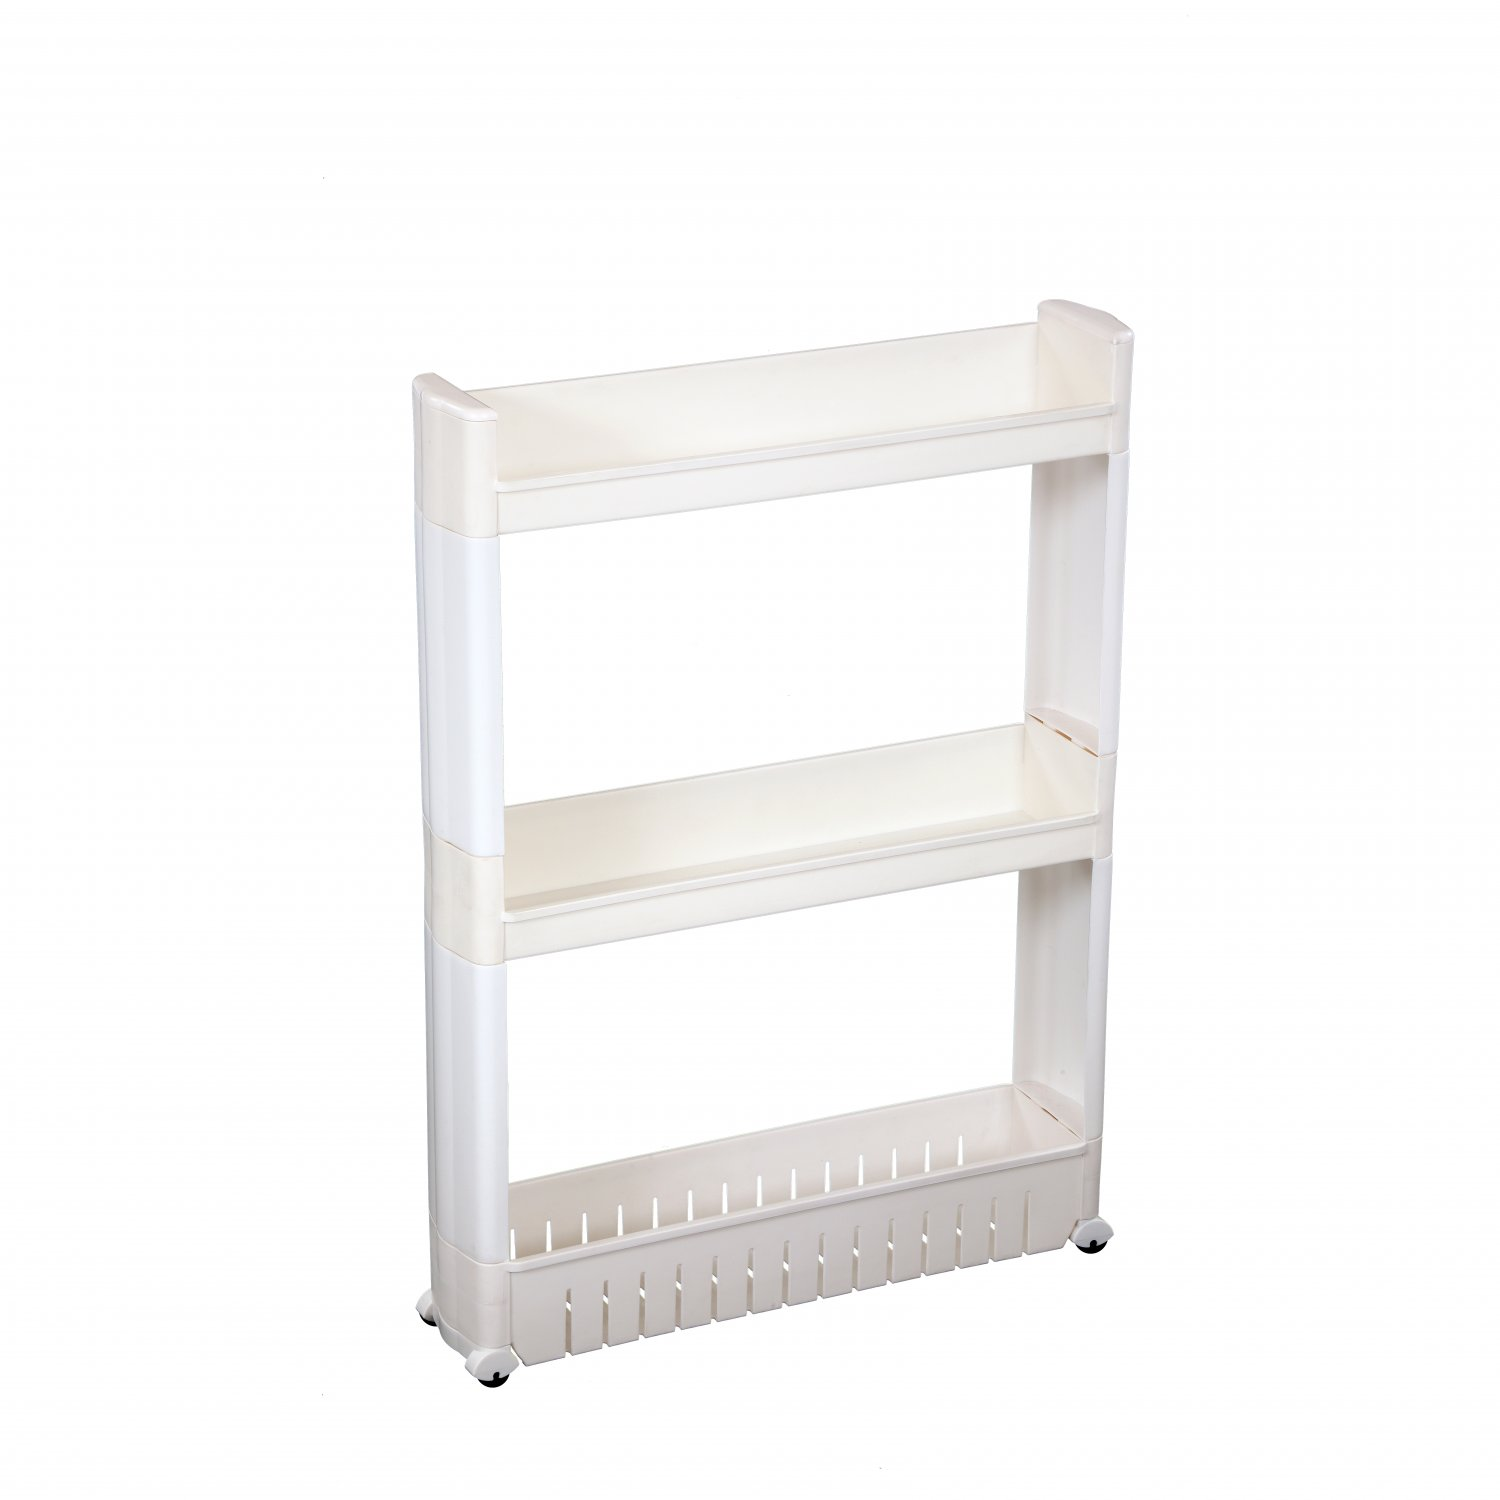 3 Tier Slide Out Kitchen Bathroom Storage Tower Shelf Organiser